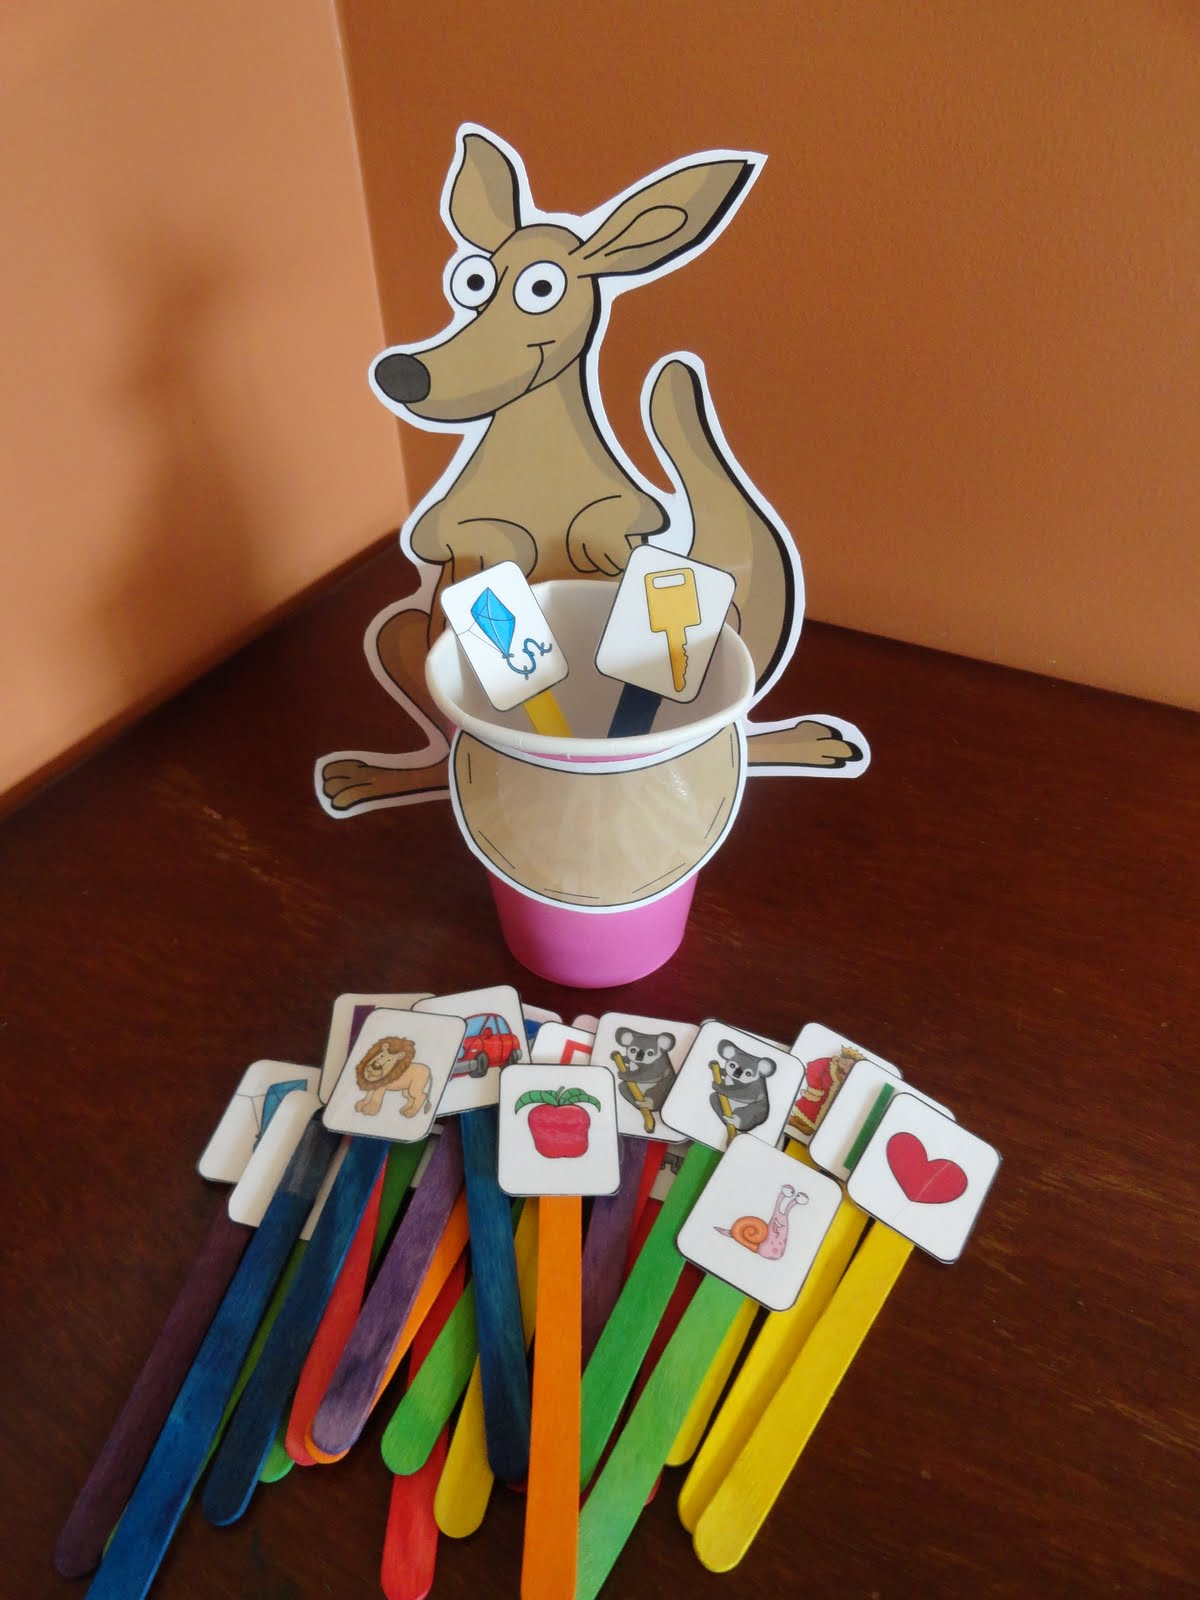 Kinder Garden: Izzie, Mac And Me: Storytime From A To Z: Miss